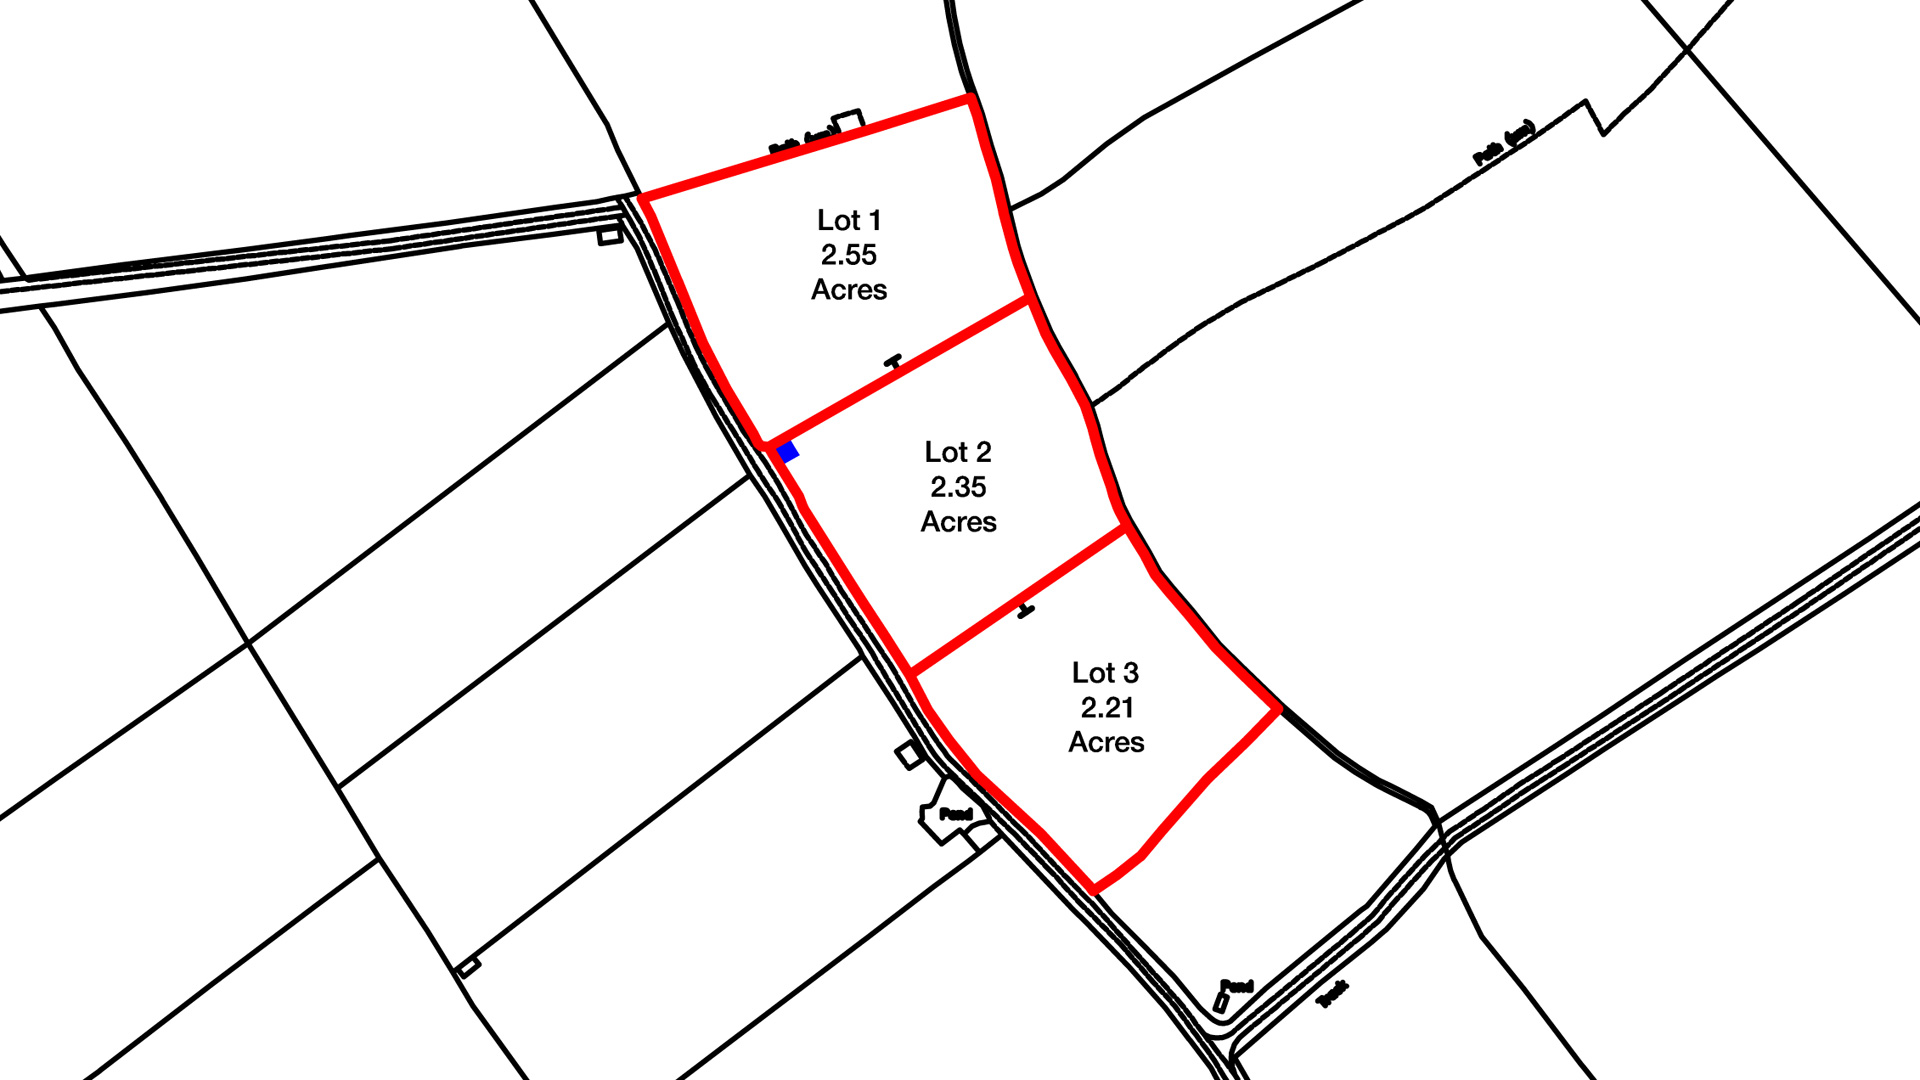 Land for sale at Draytonmead Farm site plan